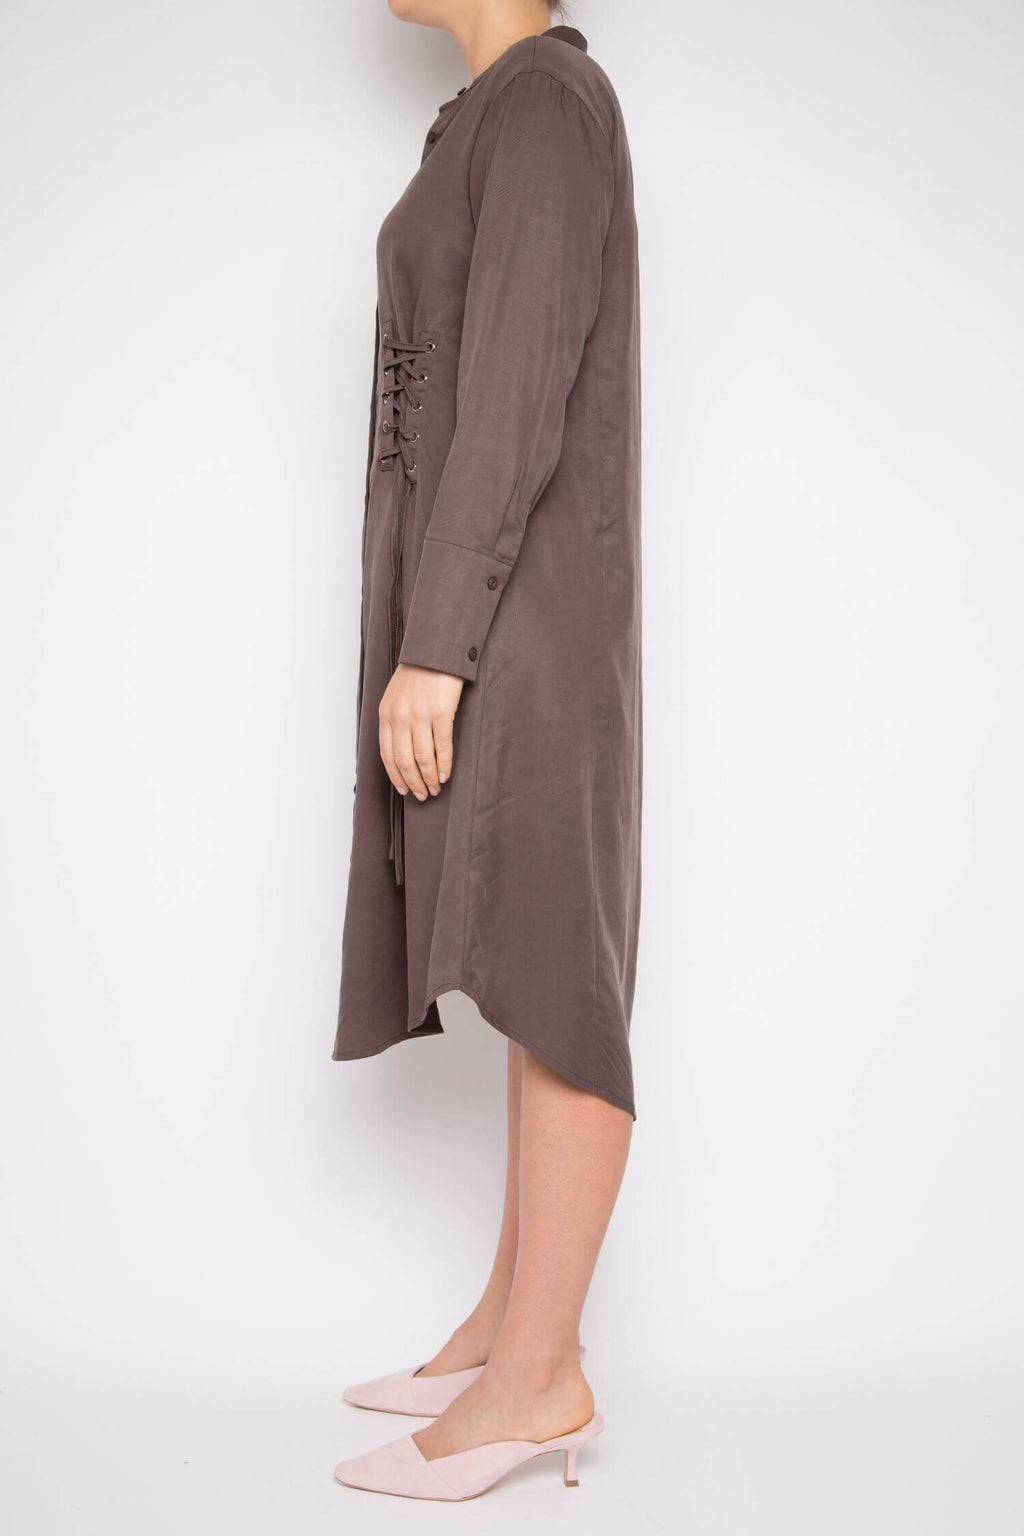 Muyu Dress in Slate